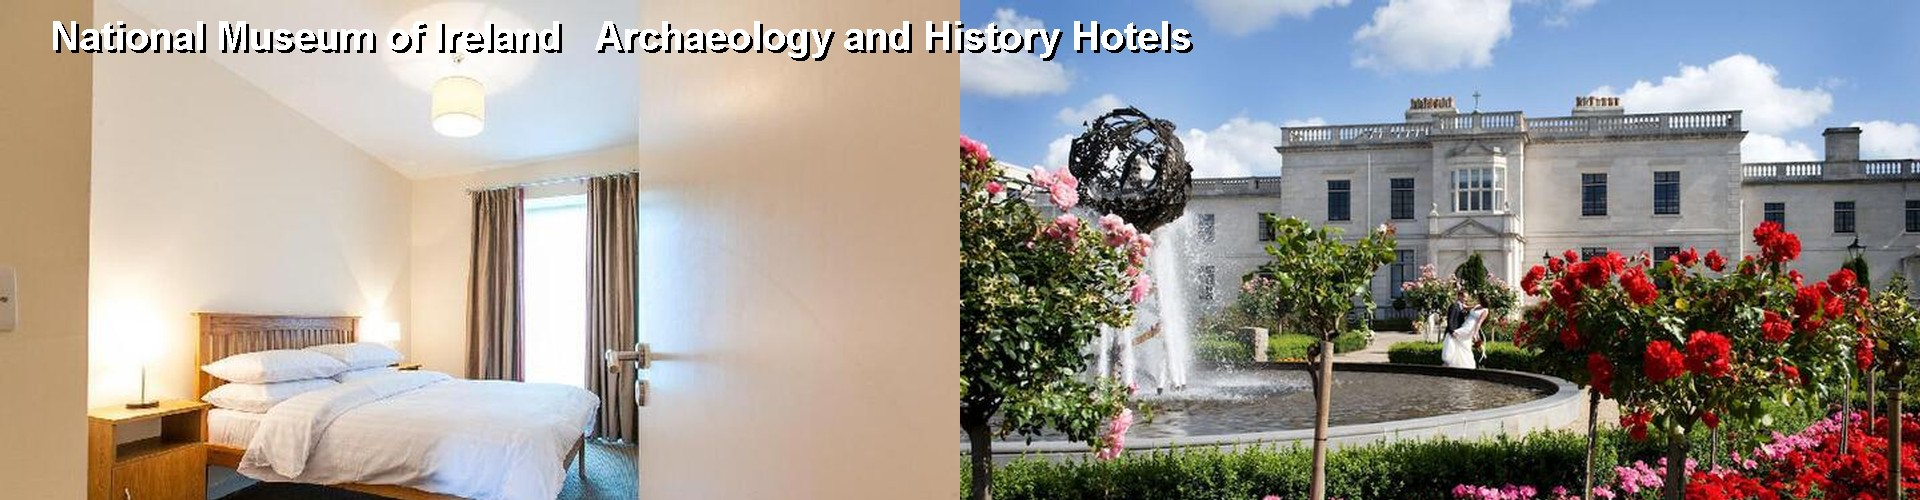 5 Best Hotels near National Museum of Ireland Archaeology and History